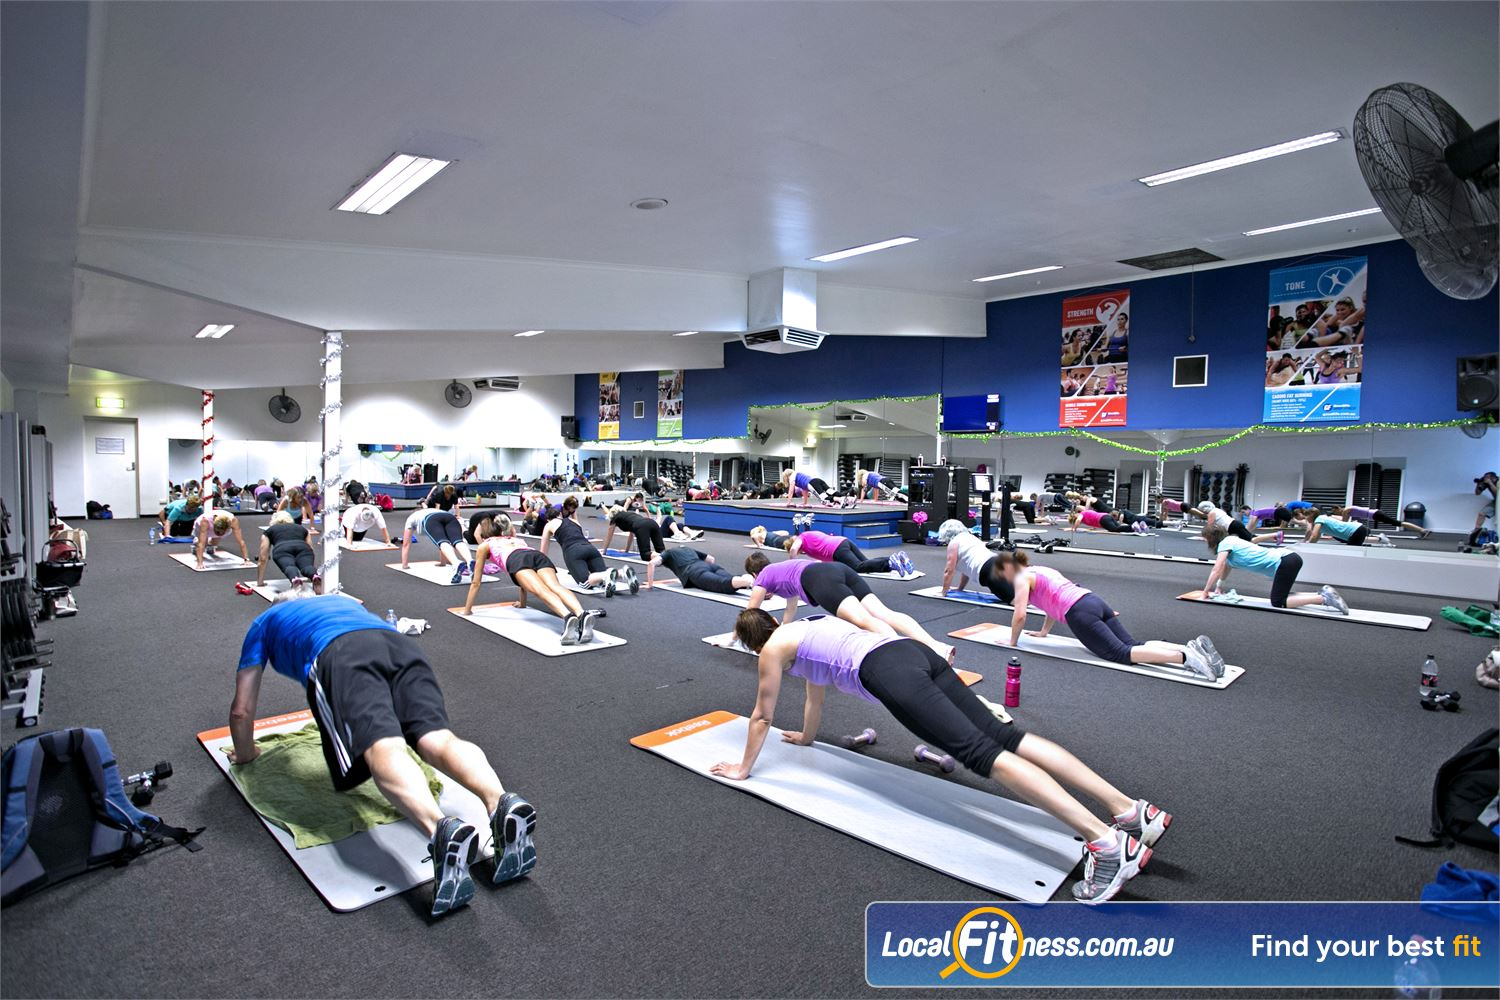 Goodlife Health Clubs Mitcham Near Netherby Popular classes such as Kingswood Yoga and Pilates run regularly.